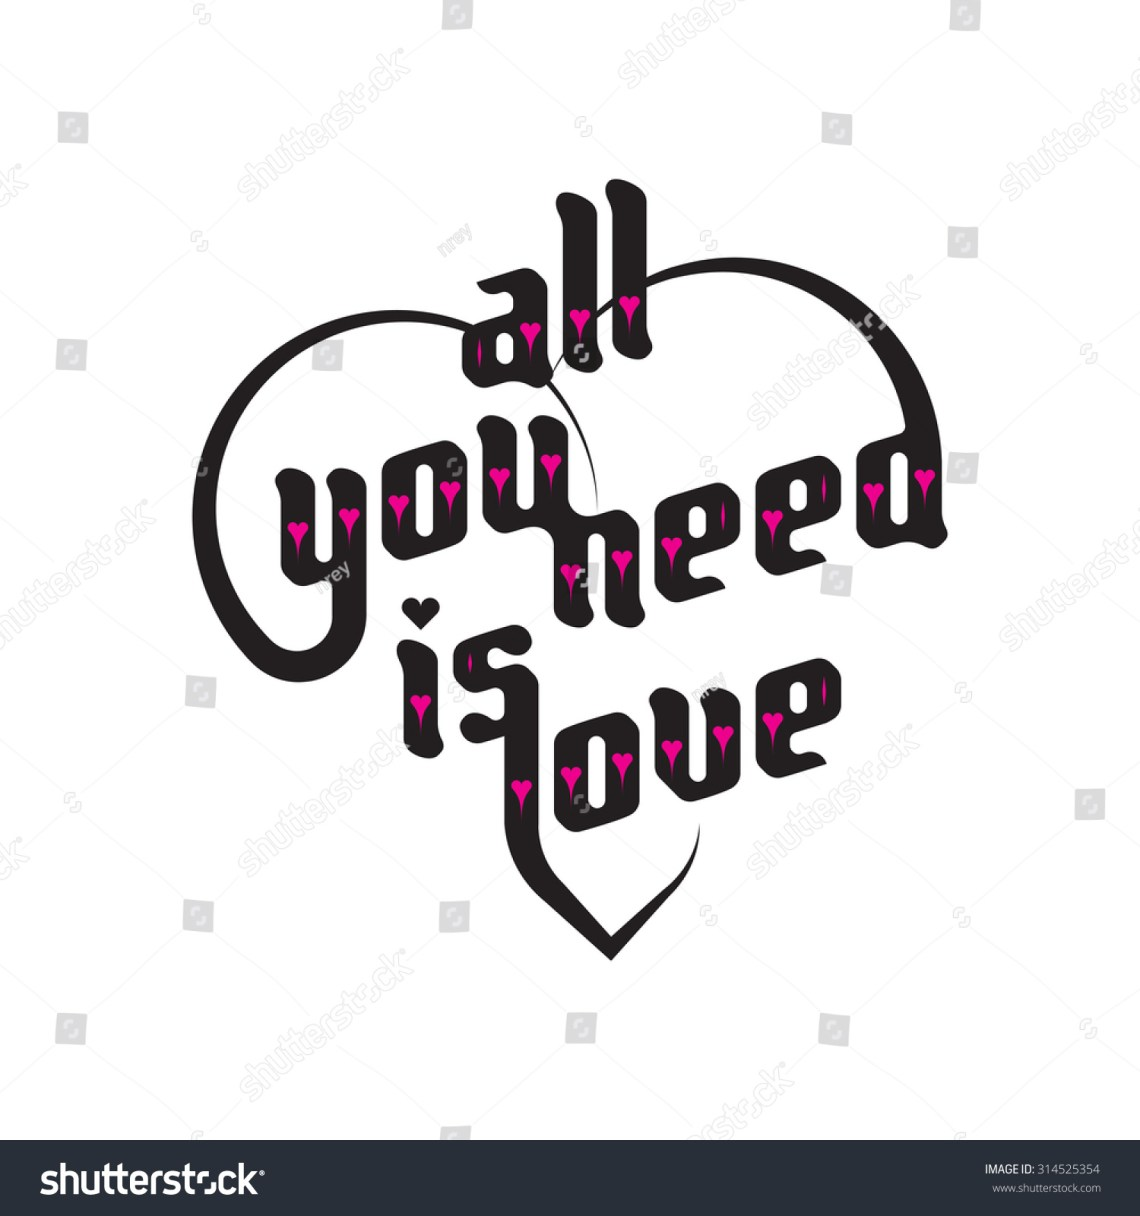 Download Heart Typography. All You Need Is Love. Love Typography ...